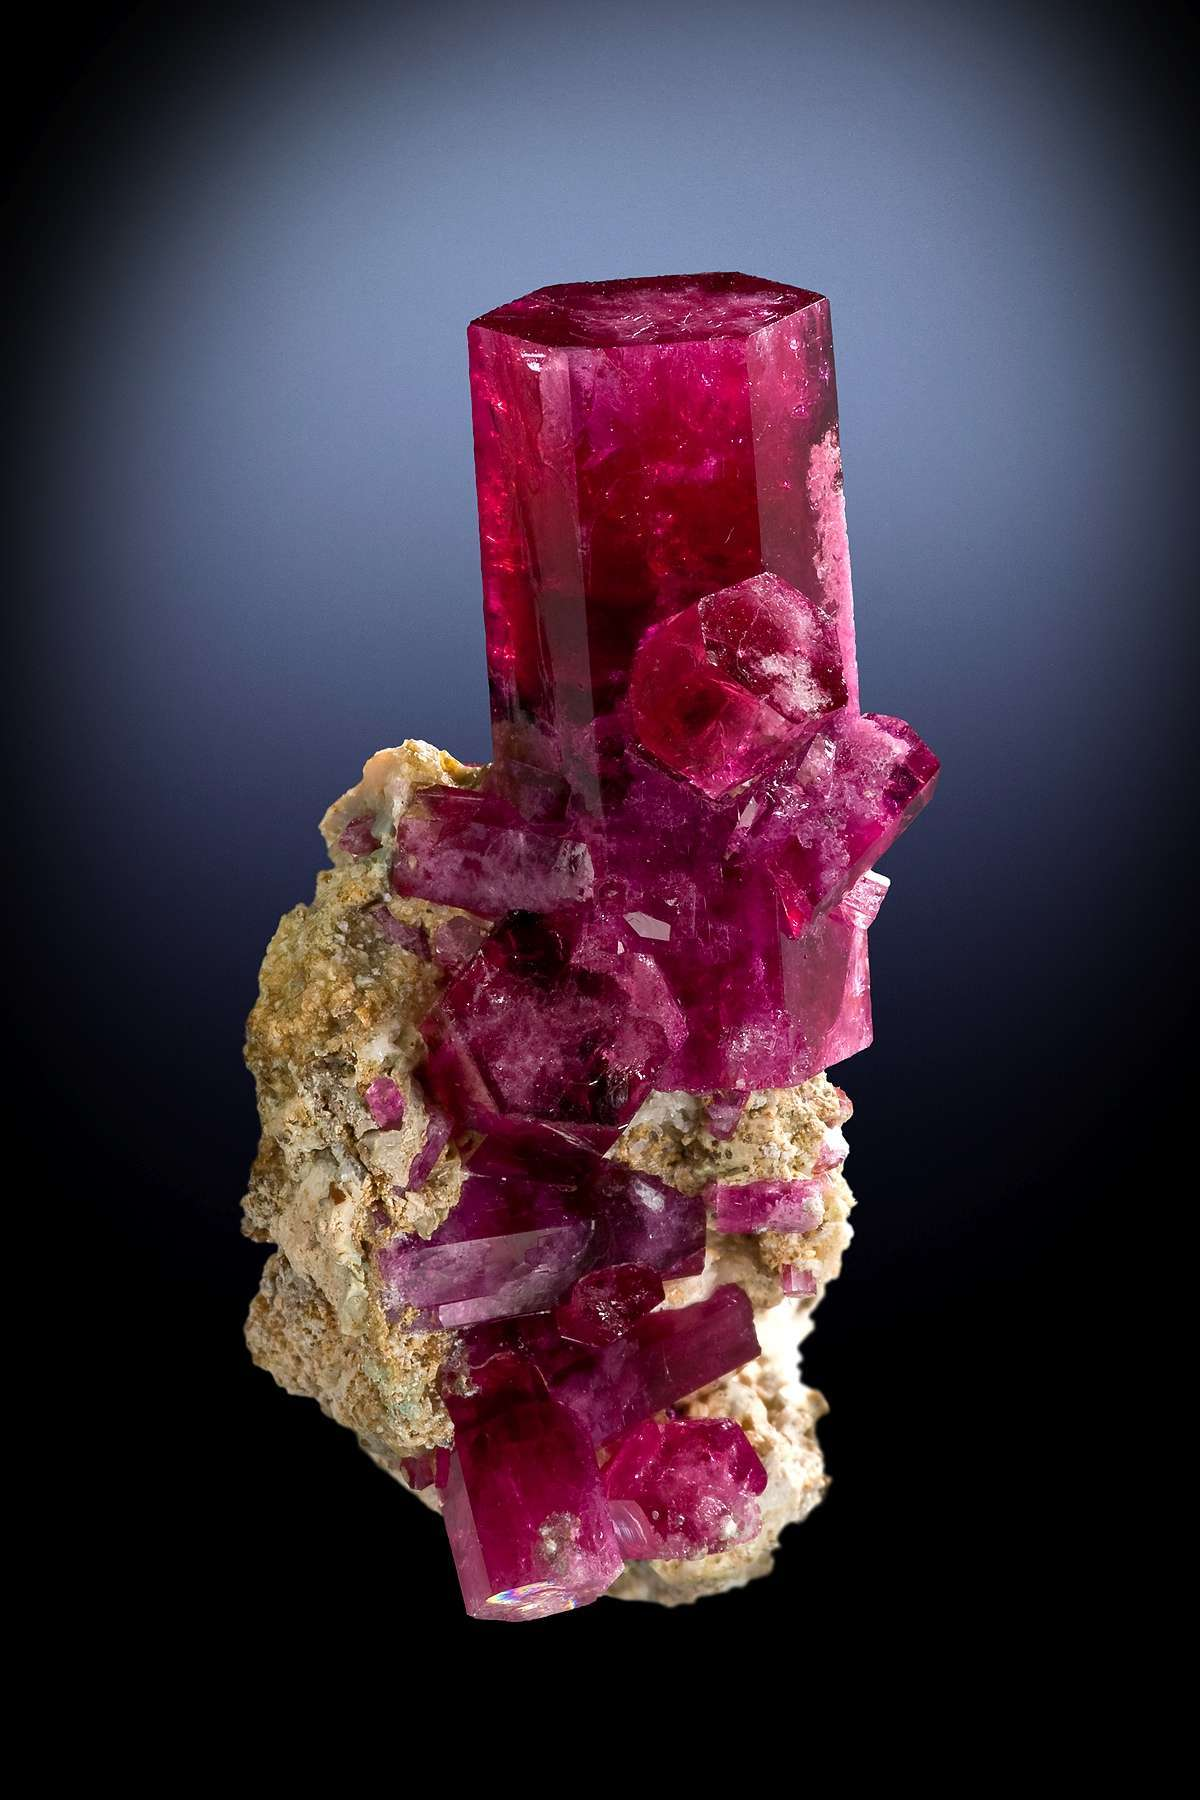 This THE RED BERYL SPECIMEN TO OWN money object treasures common It